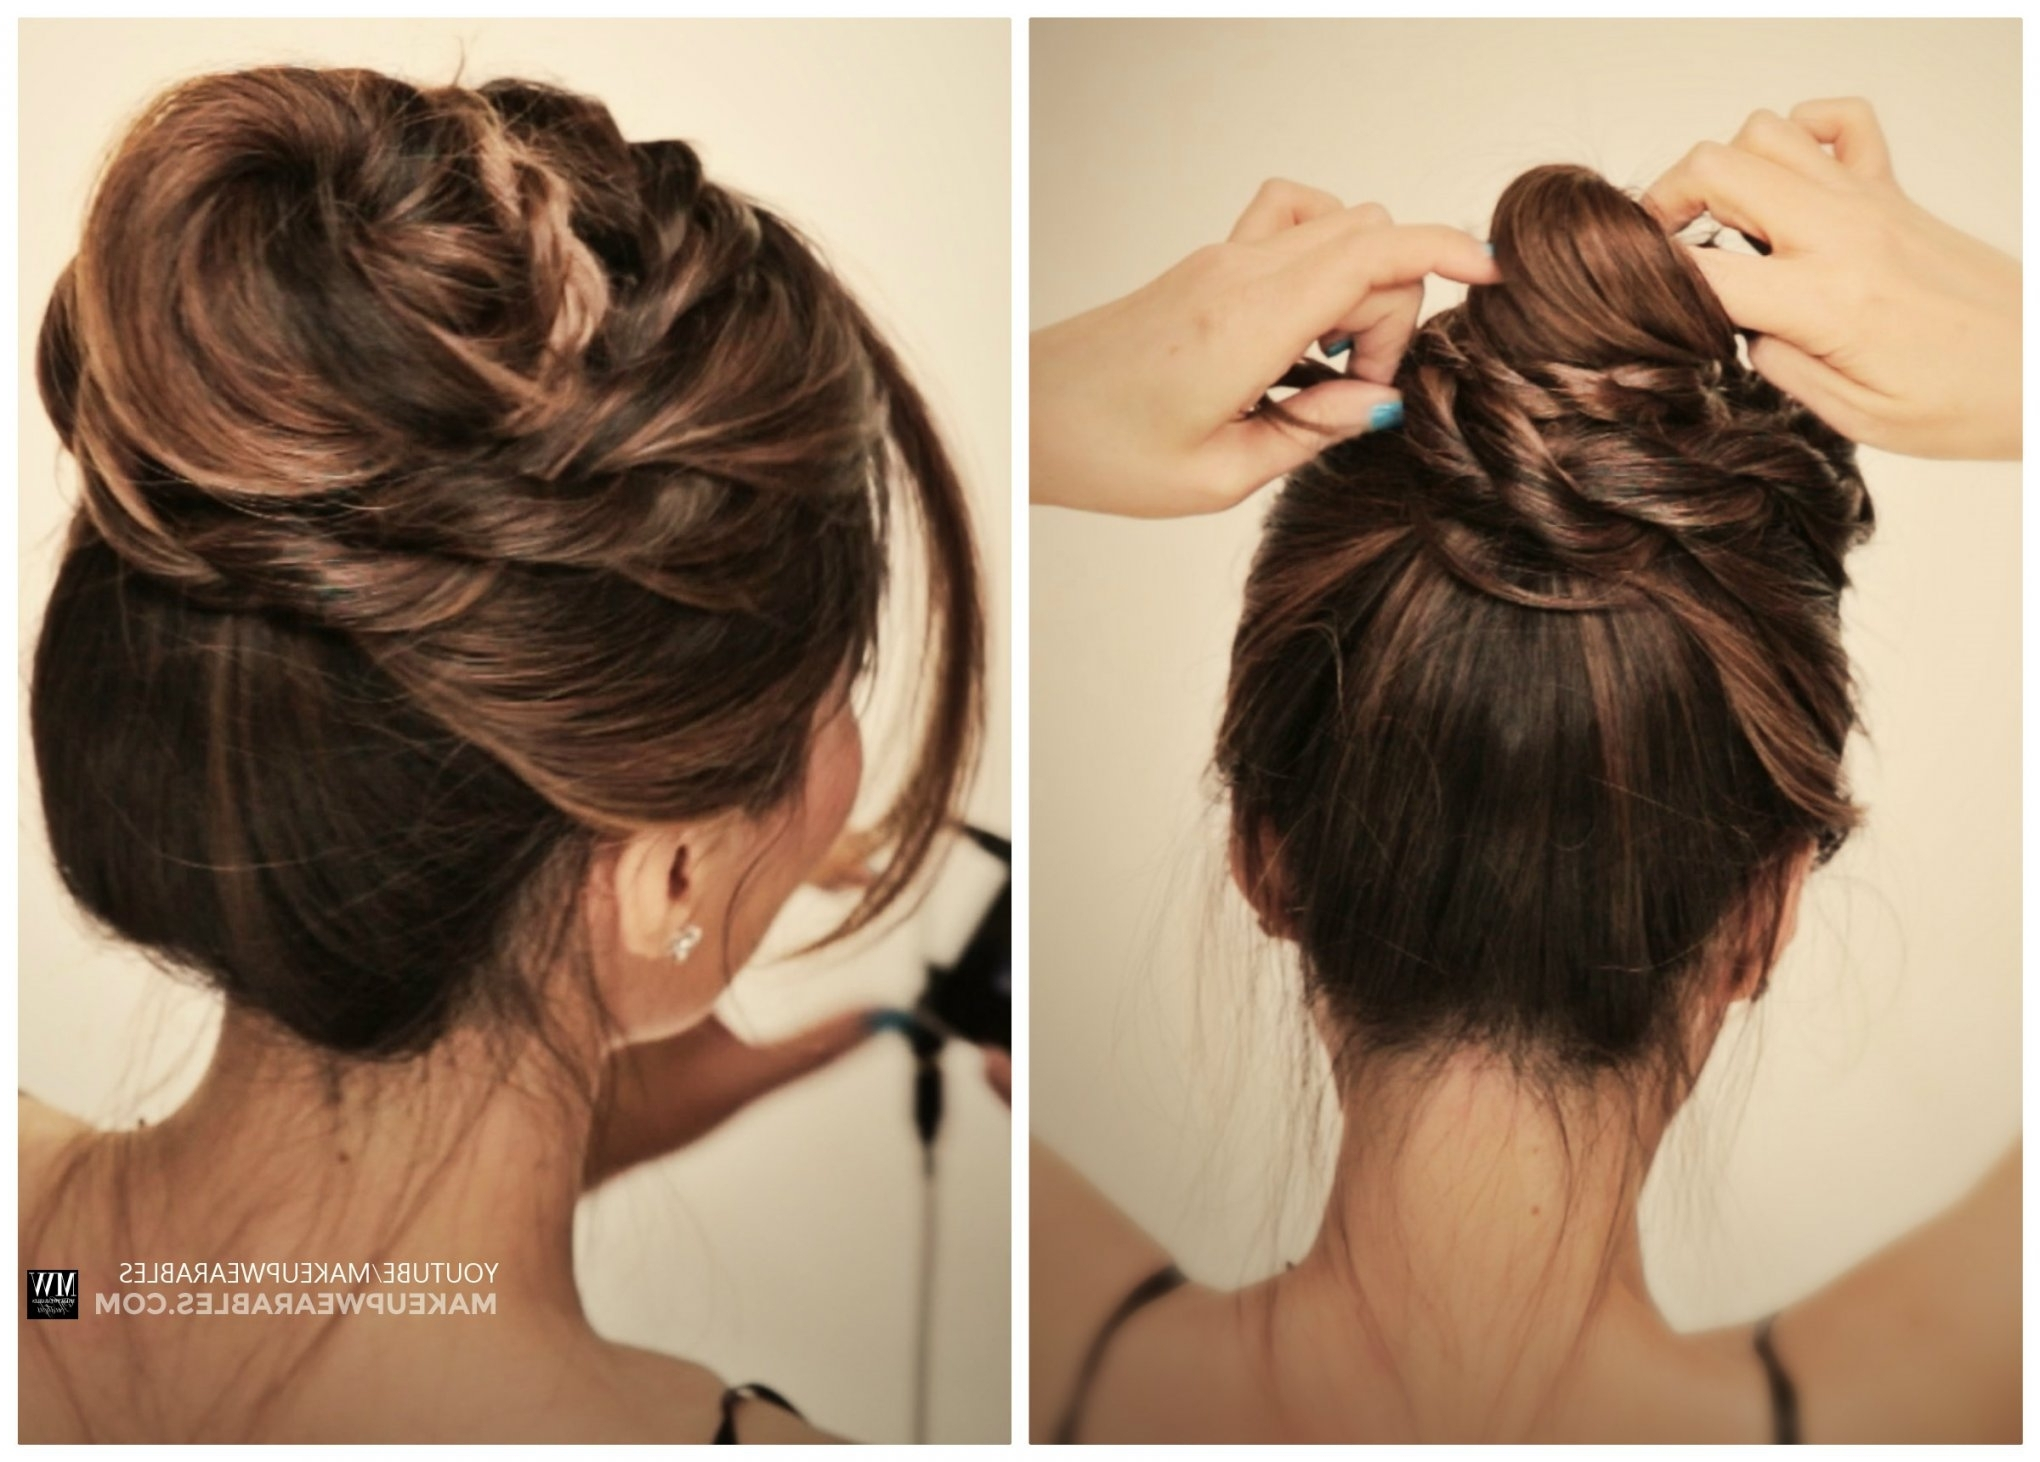 How To: 5 Amazingly Cute + Easy Hairstyles With A Simple Twist Regarding Cute And Easy Updo Hairstyles (View 11 of 15)